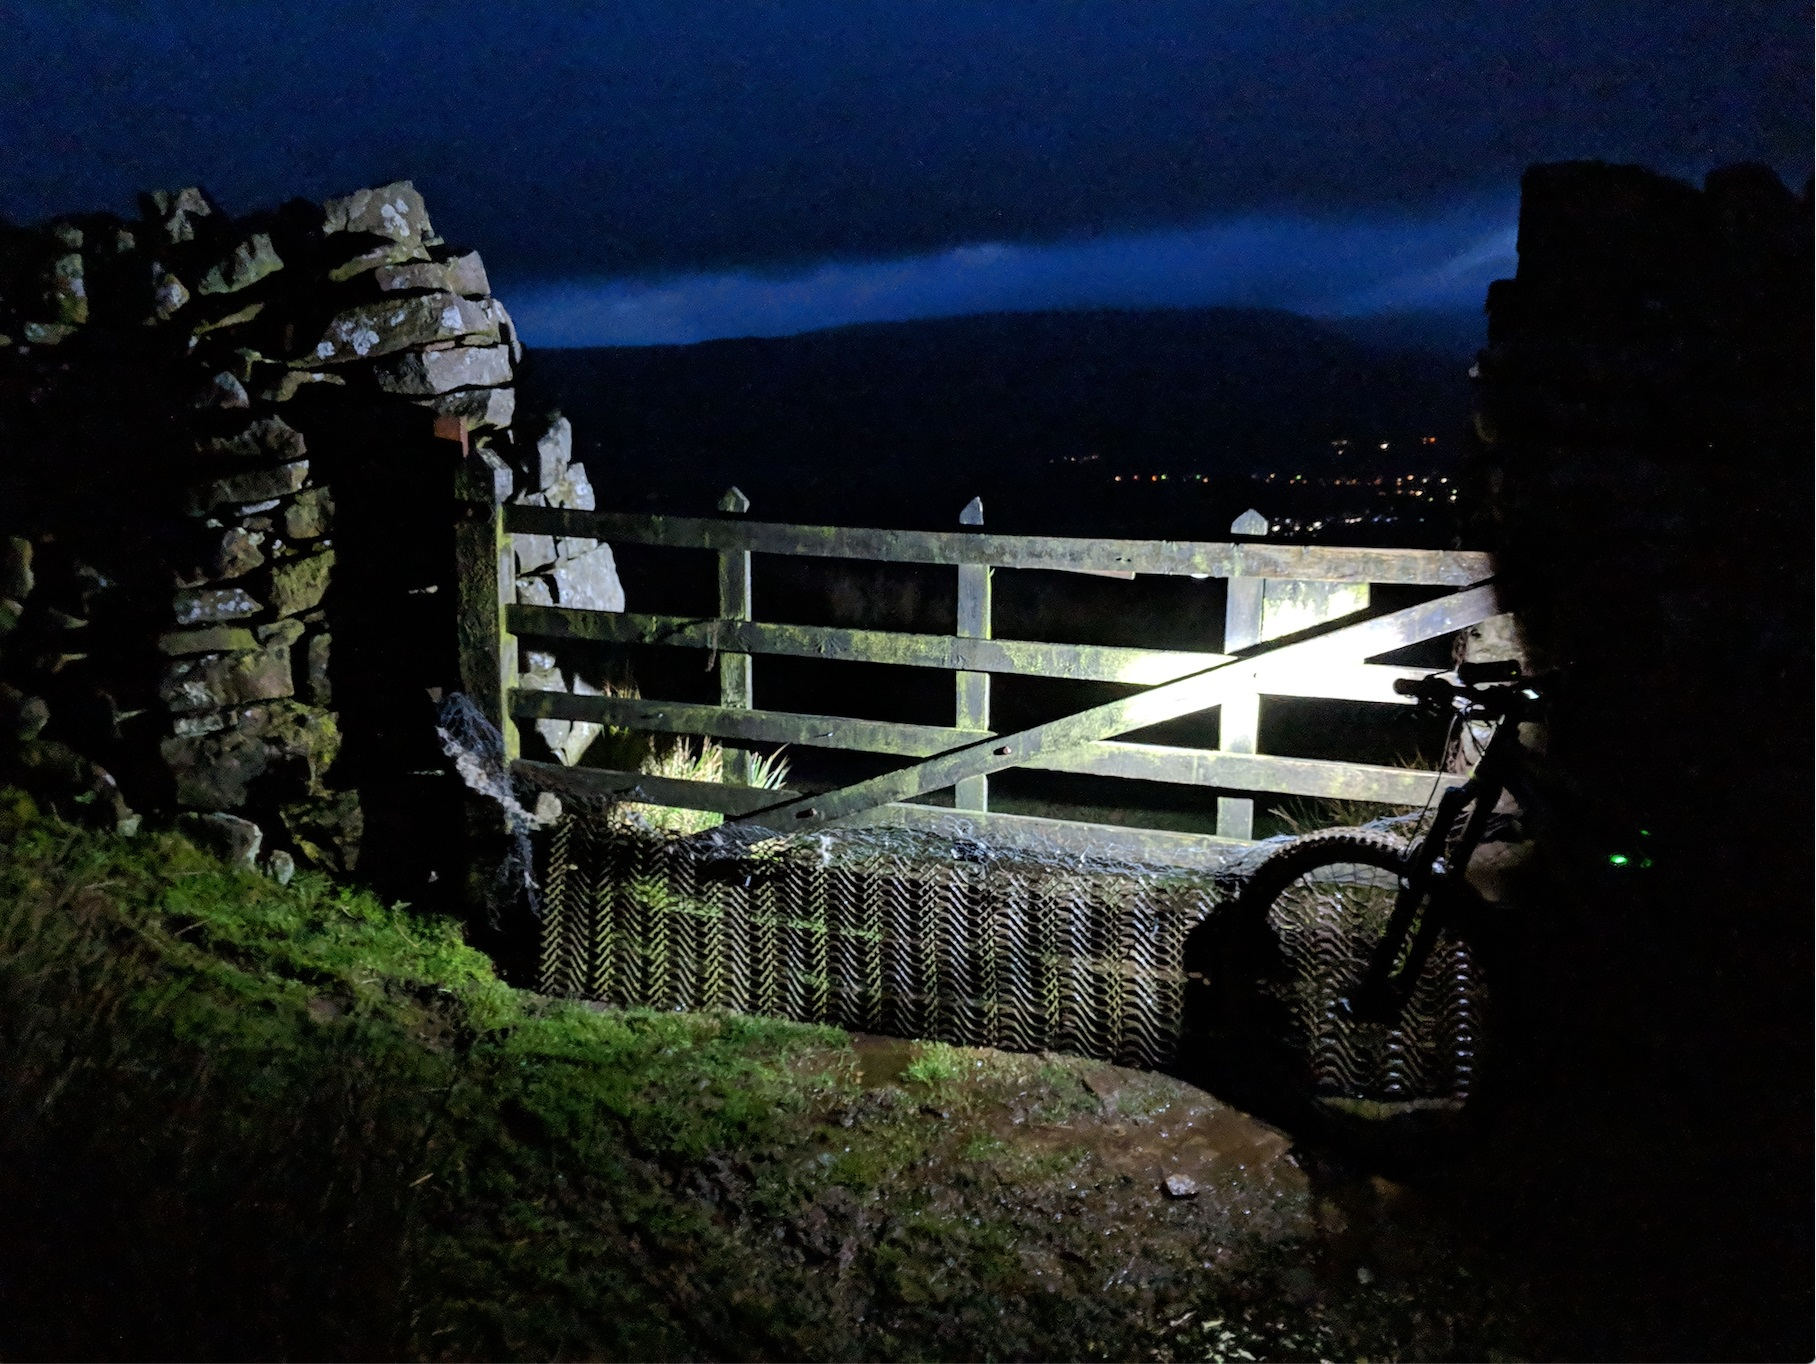 Bike against fence overlooking a starry night